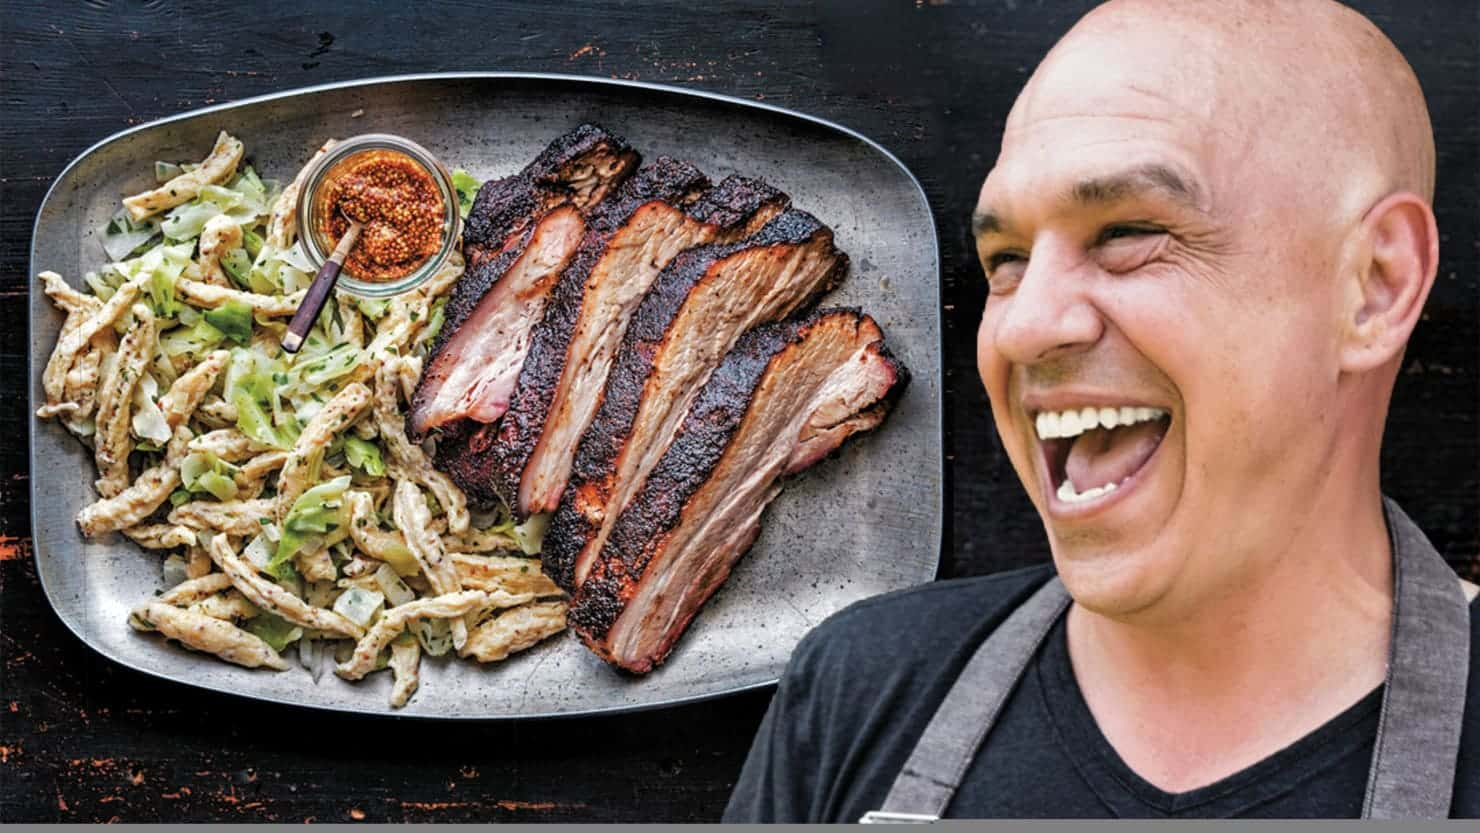 Michael Symon's Recipe for Cleveland-Style Smoked Pork Belly Featured by Daily Beast